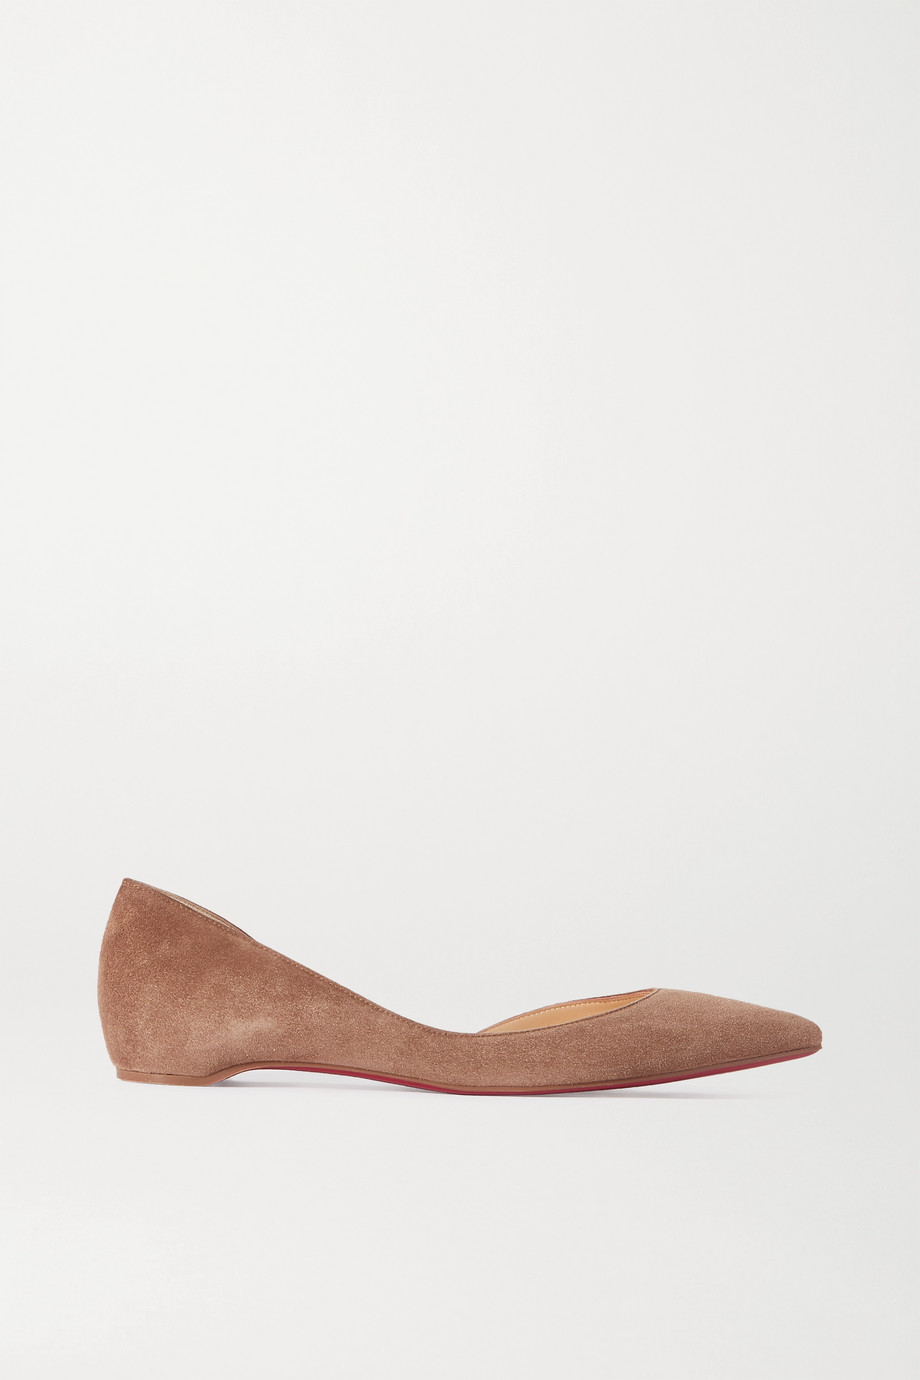 Christian Louboutin Iriza suede point-toe flats